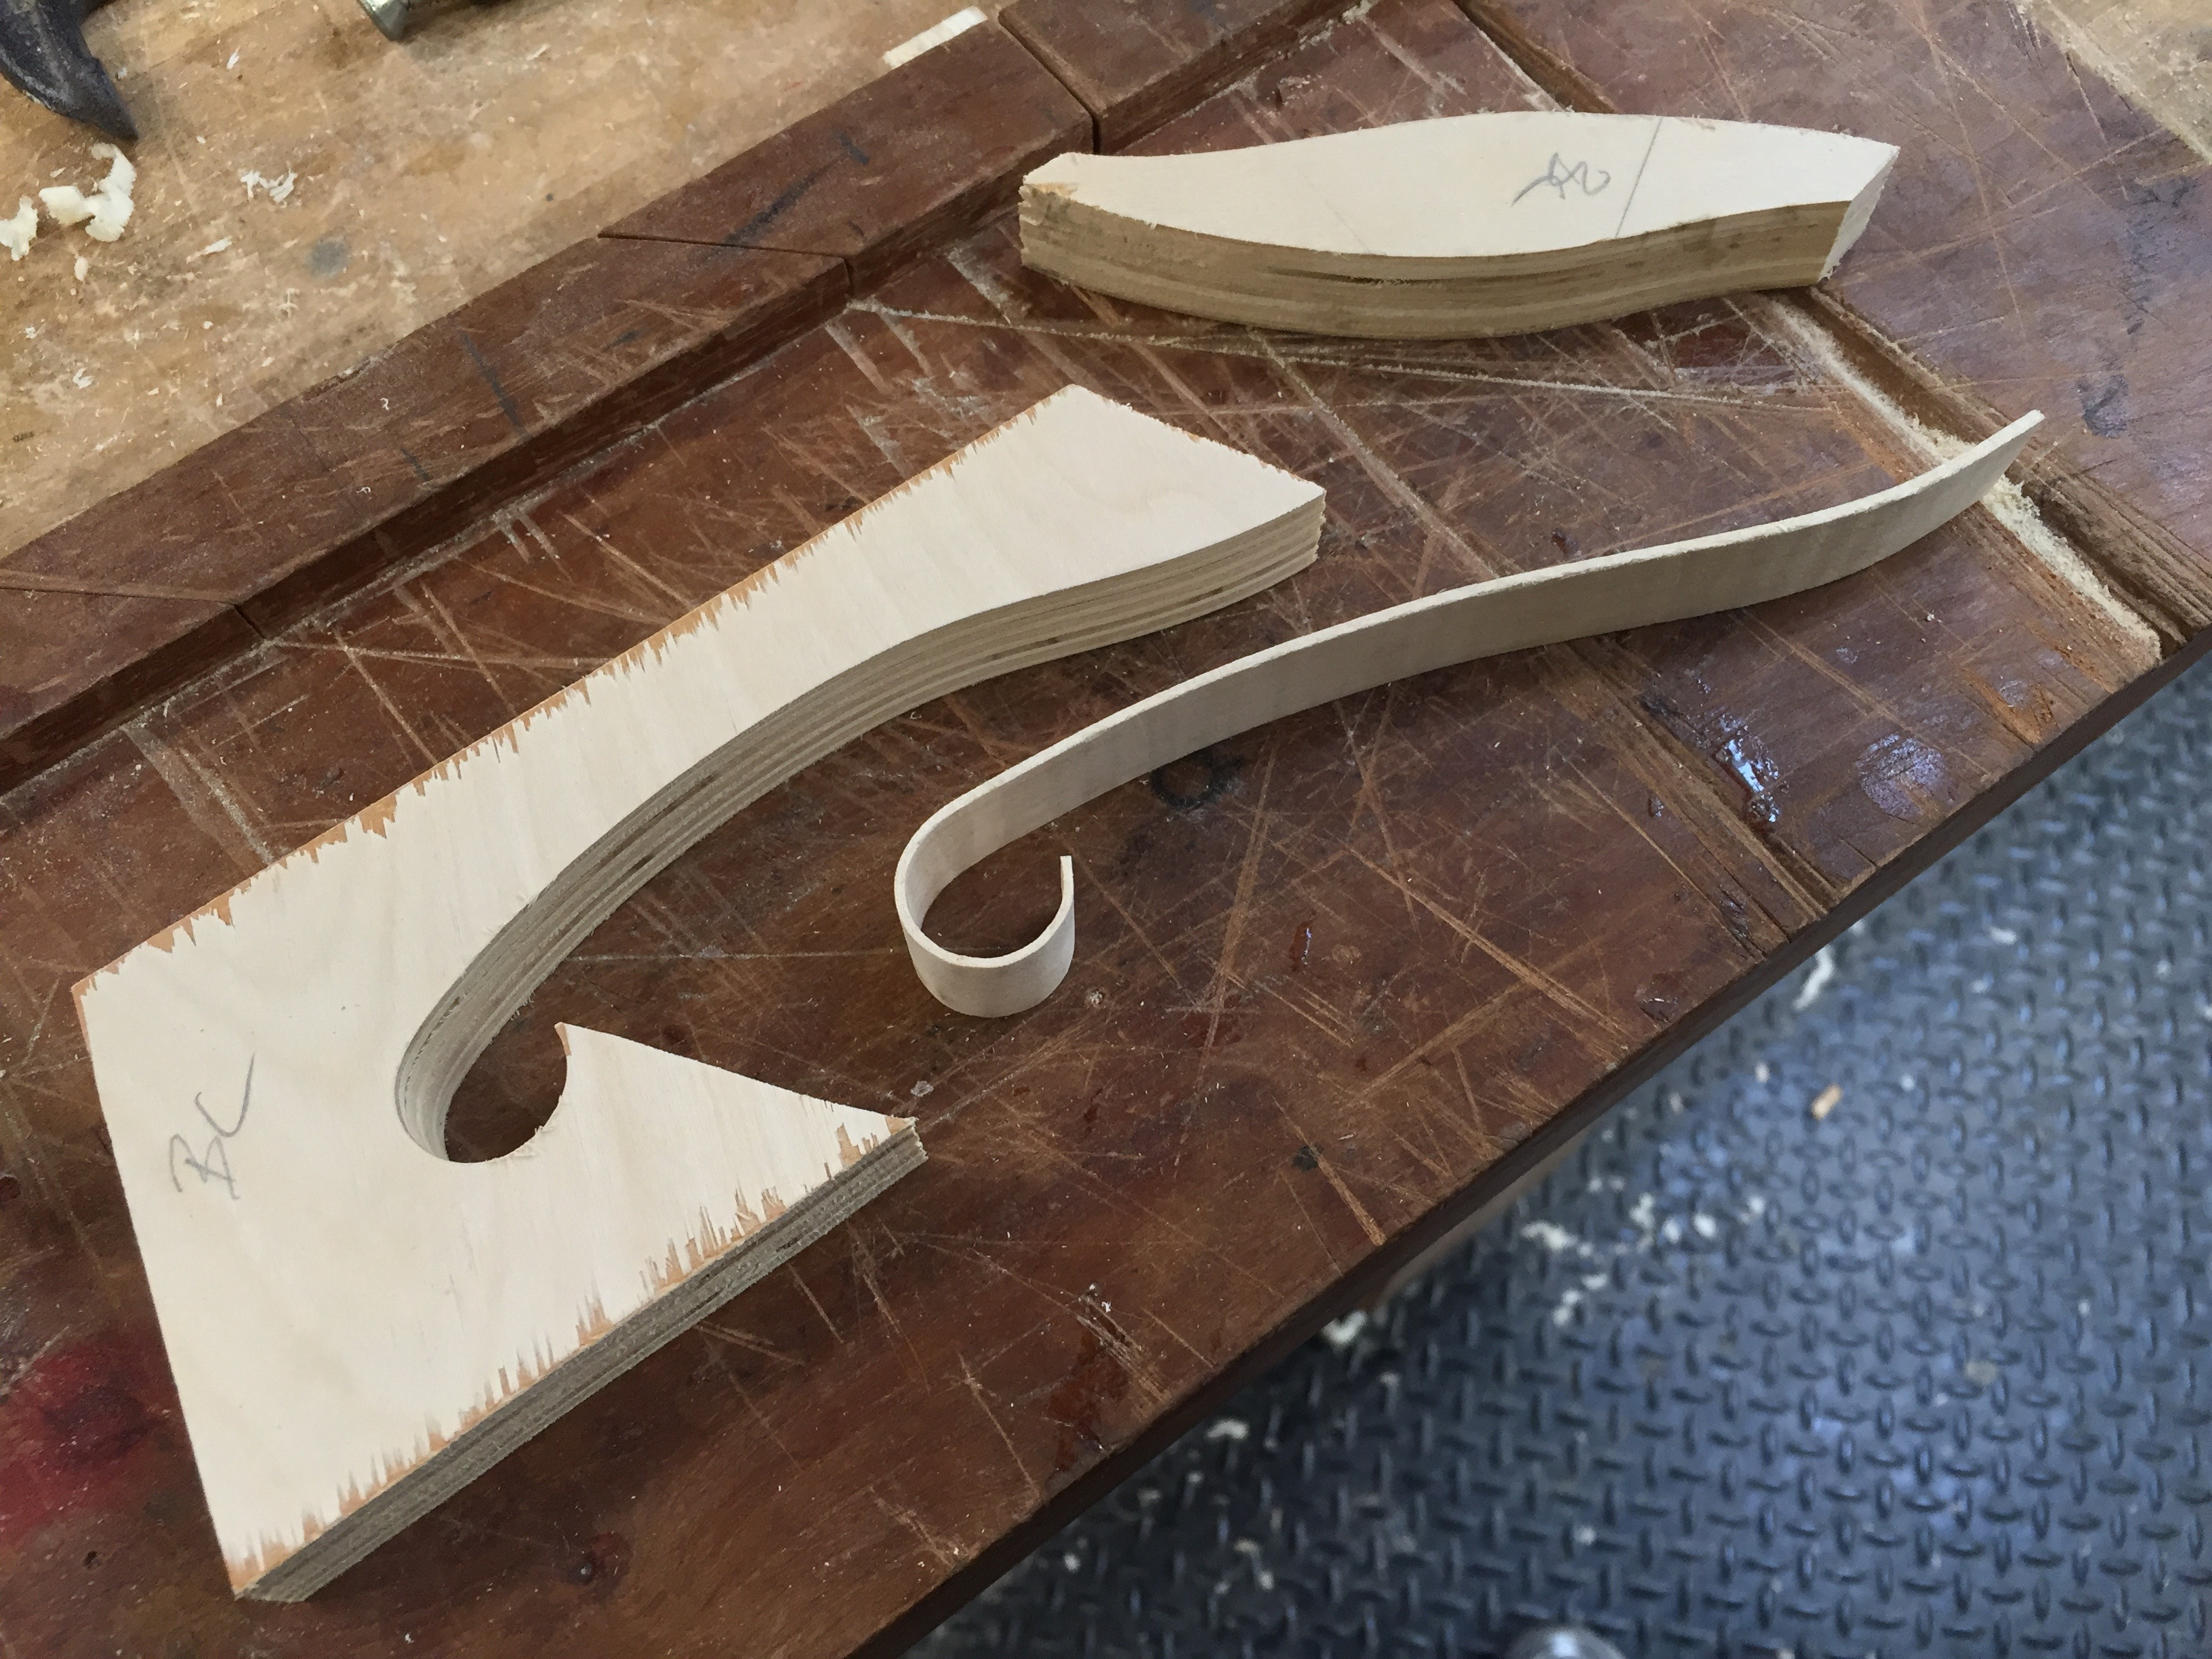 Positive and negative fhole molds with cooled maple binding